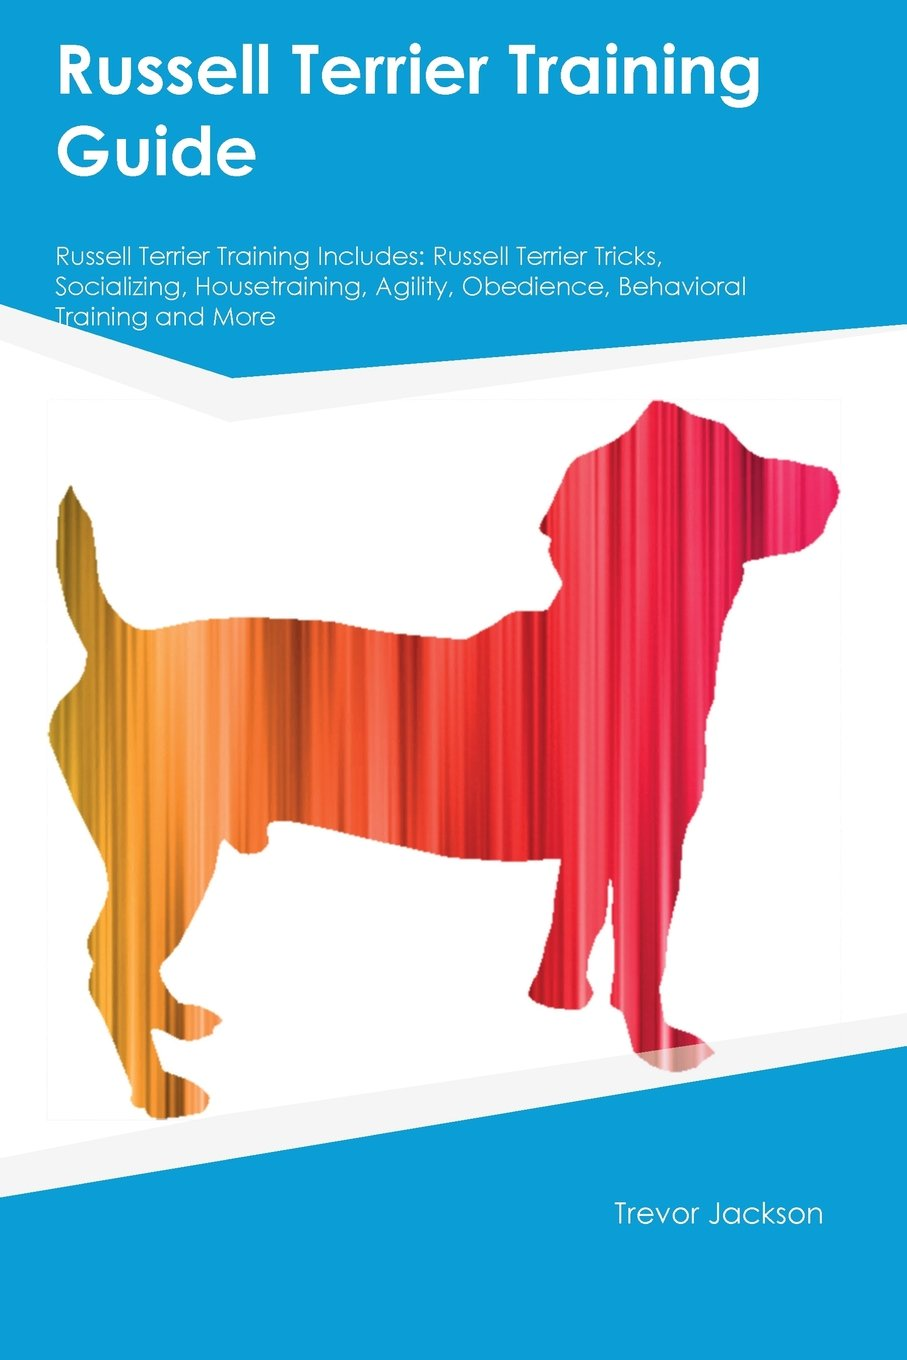 Russell Terrier Training Guide Russell Terrier Training Includes: Russell Terrier Tricks, Socializing, Housetraining, Agility, Obedience, Behavioral Training and More pdf epub